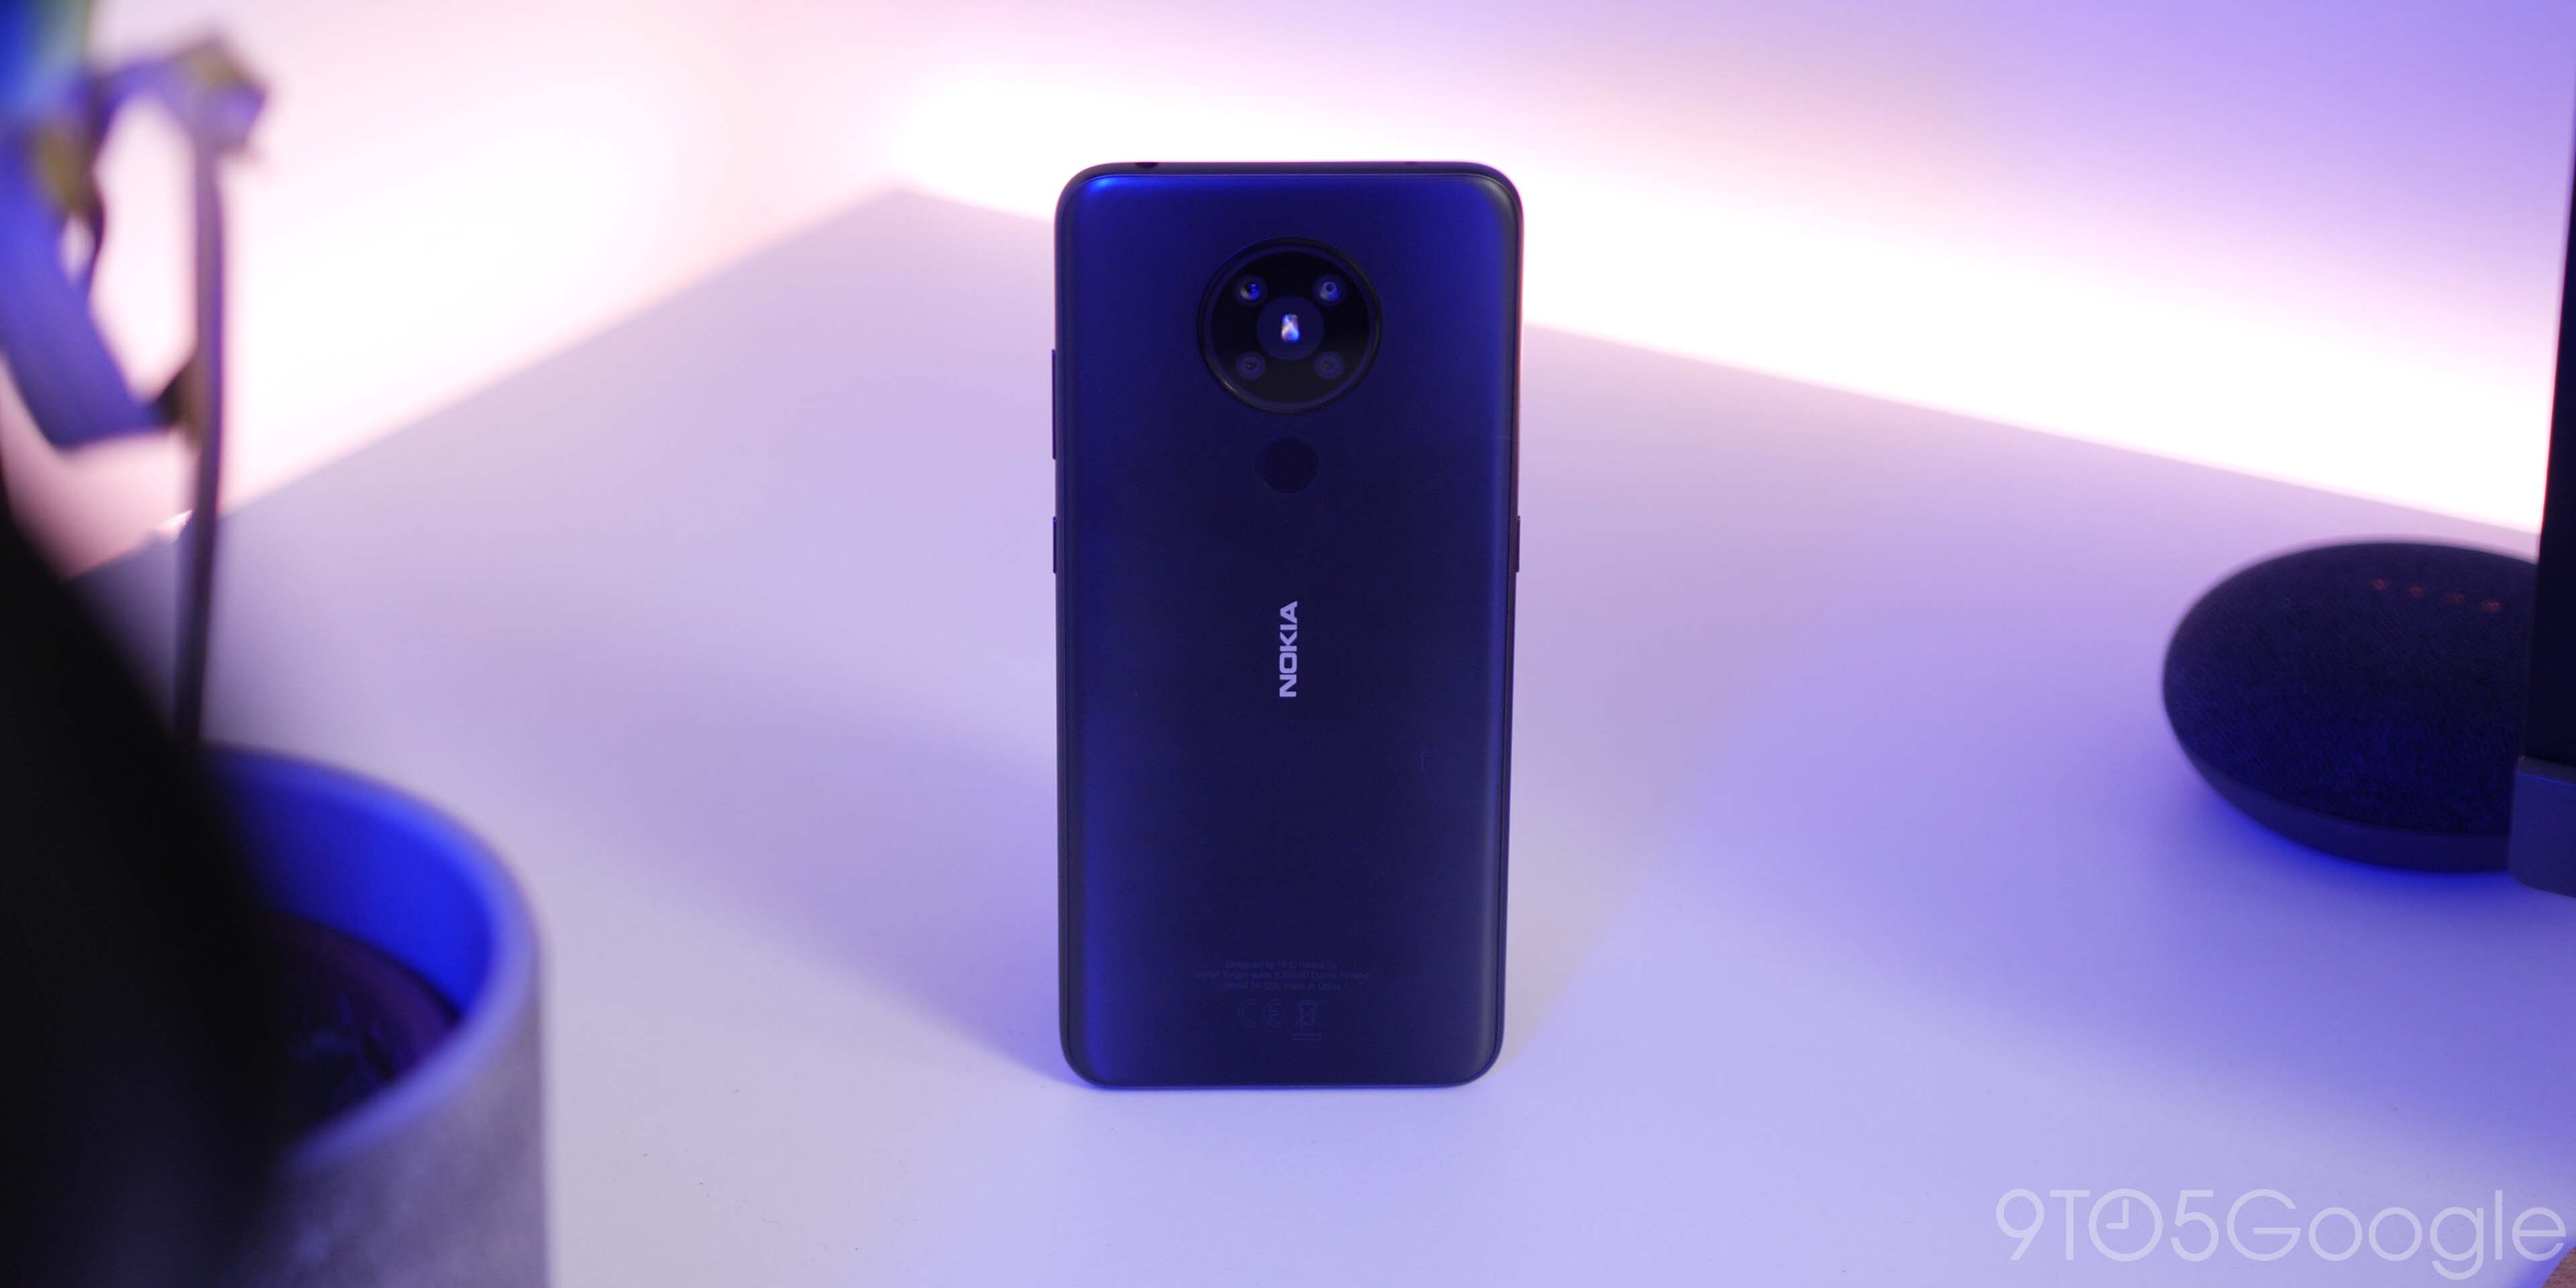 Nokia 5.3 review: Excellently affordable [Video] - 9to5Google